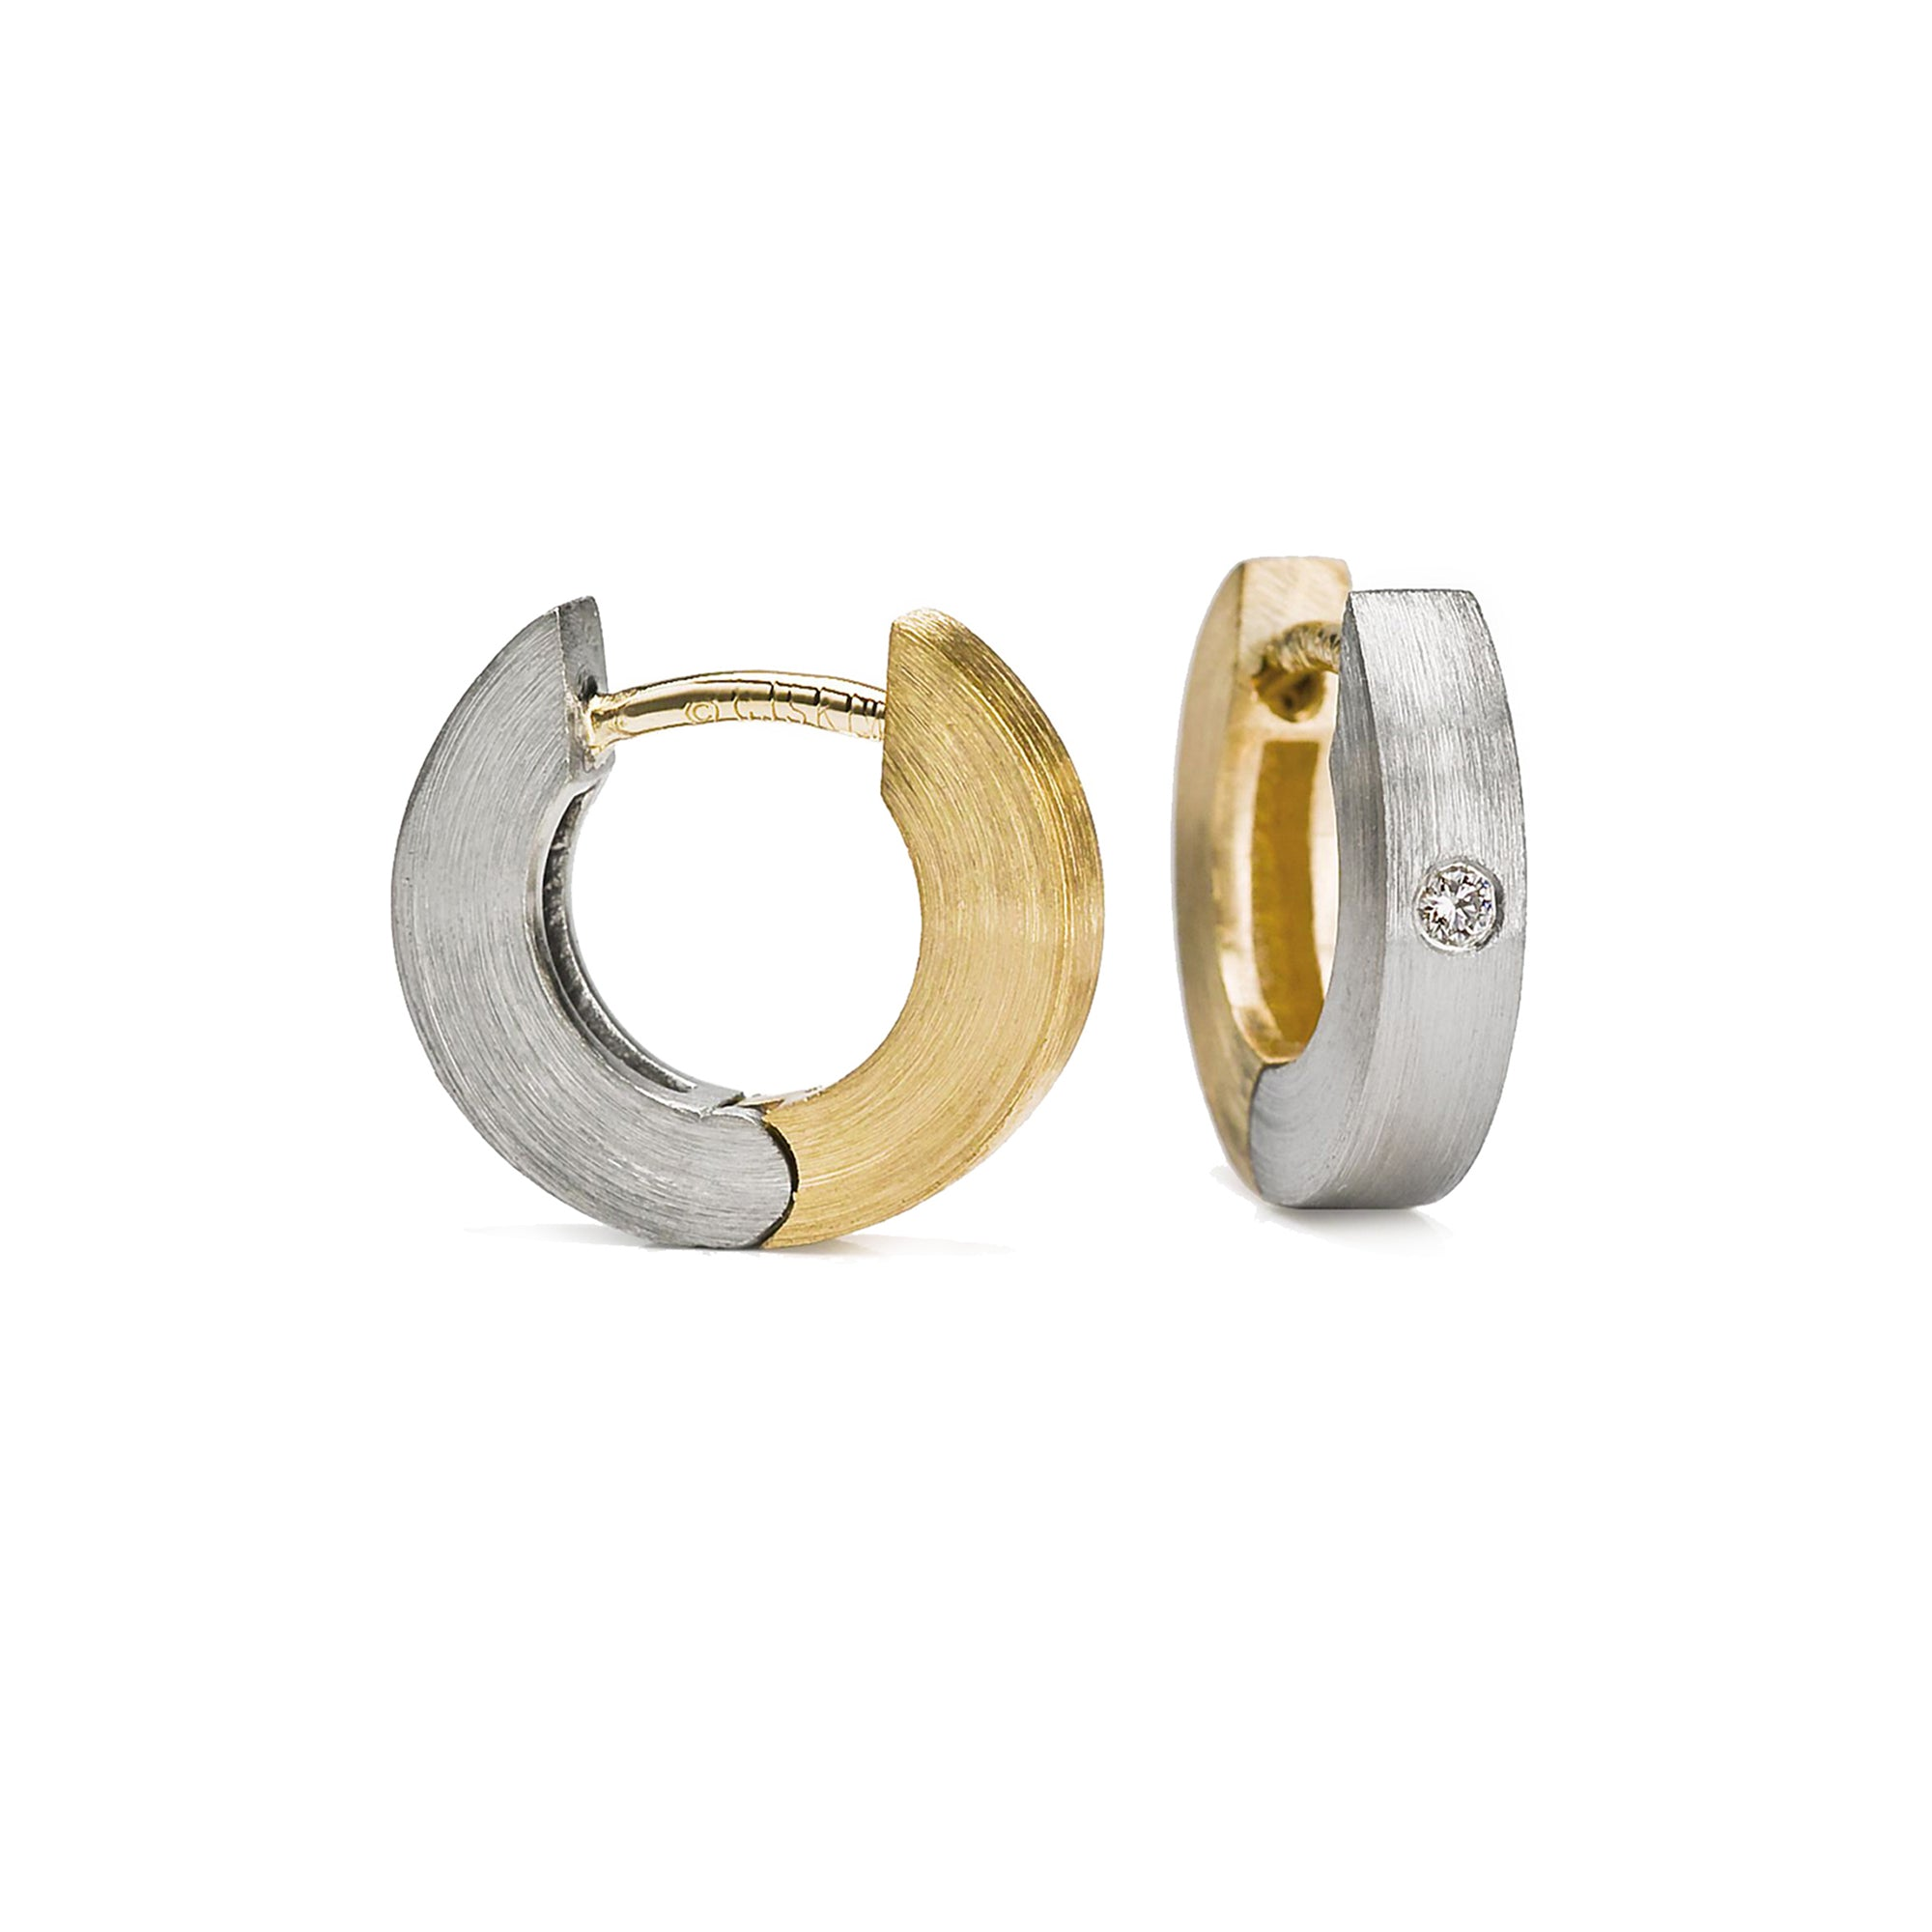 These flat profile hinged hoops earrings are 18k yellow gold and palladium with small diamonds burnish set in the palladium.